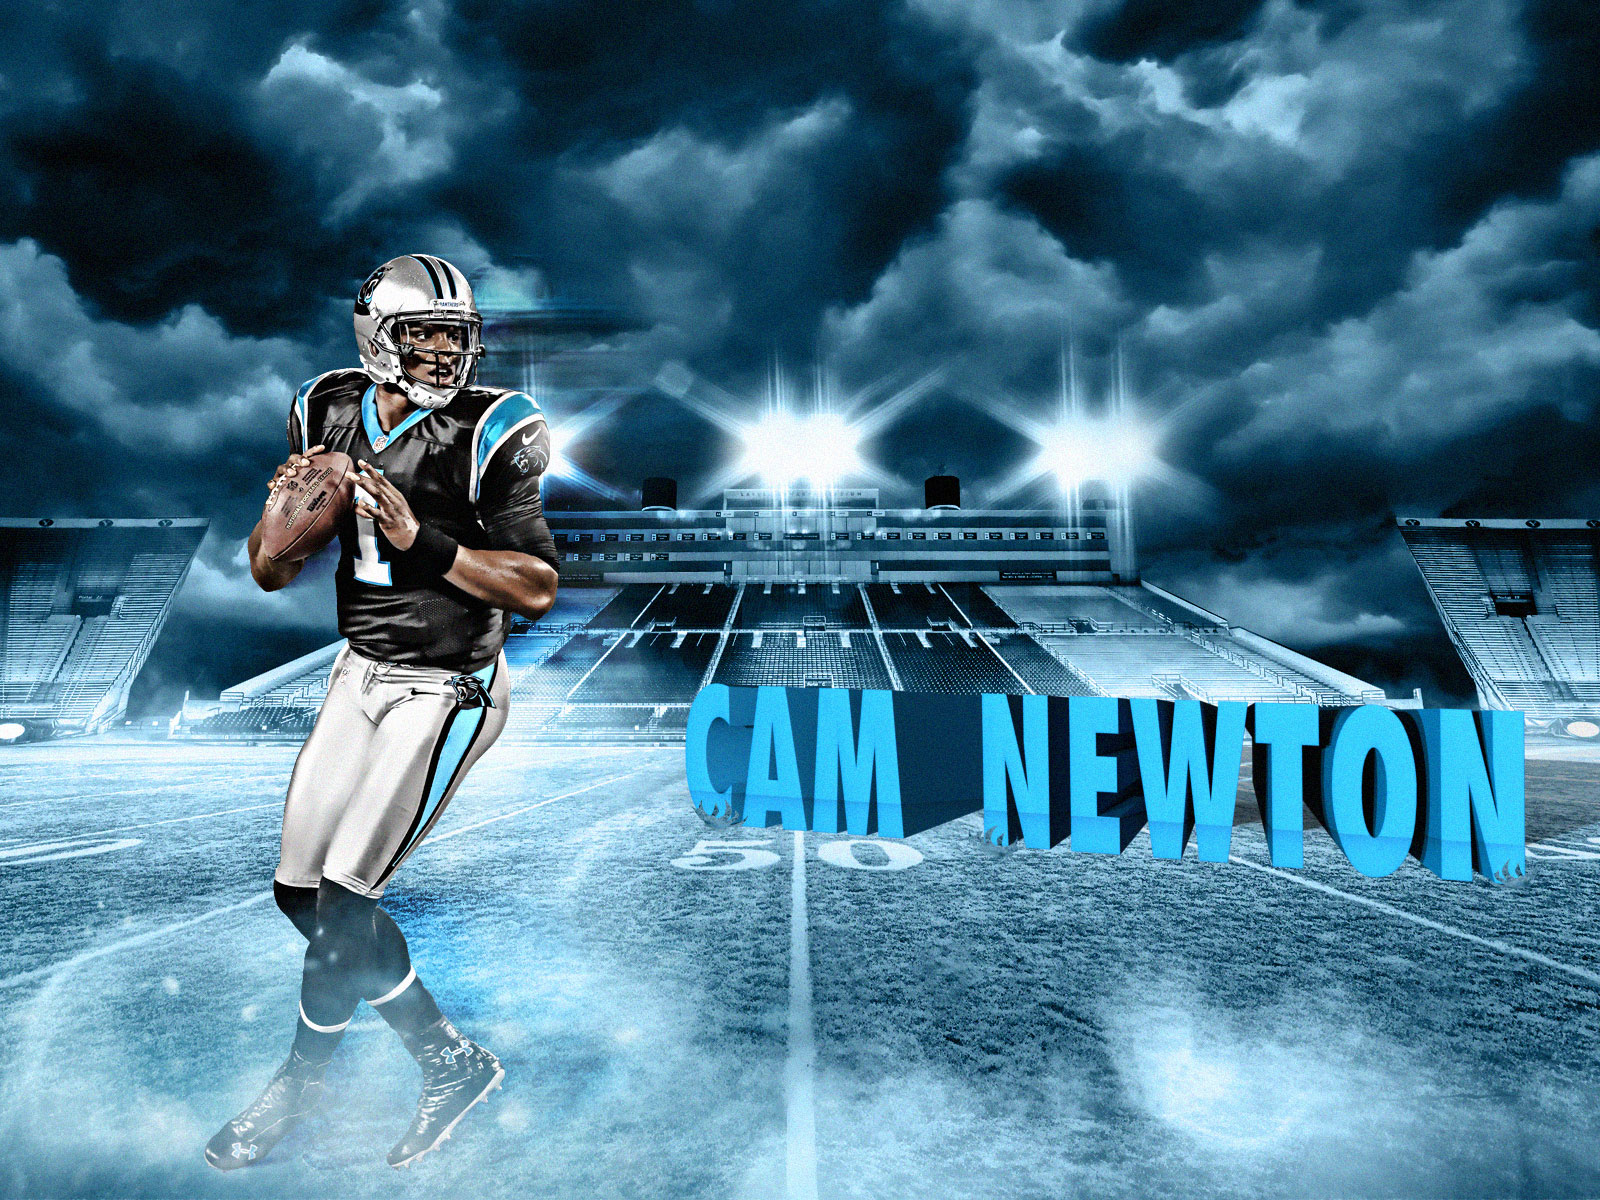 Cam Newton Wallpapers Desktop - WallpaperSafari